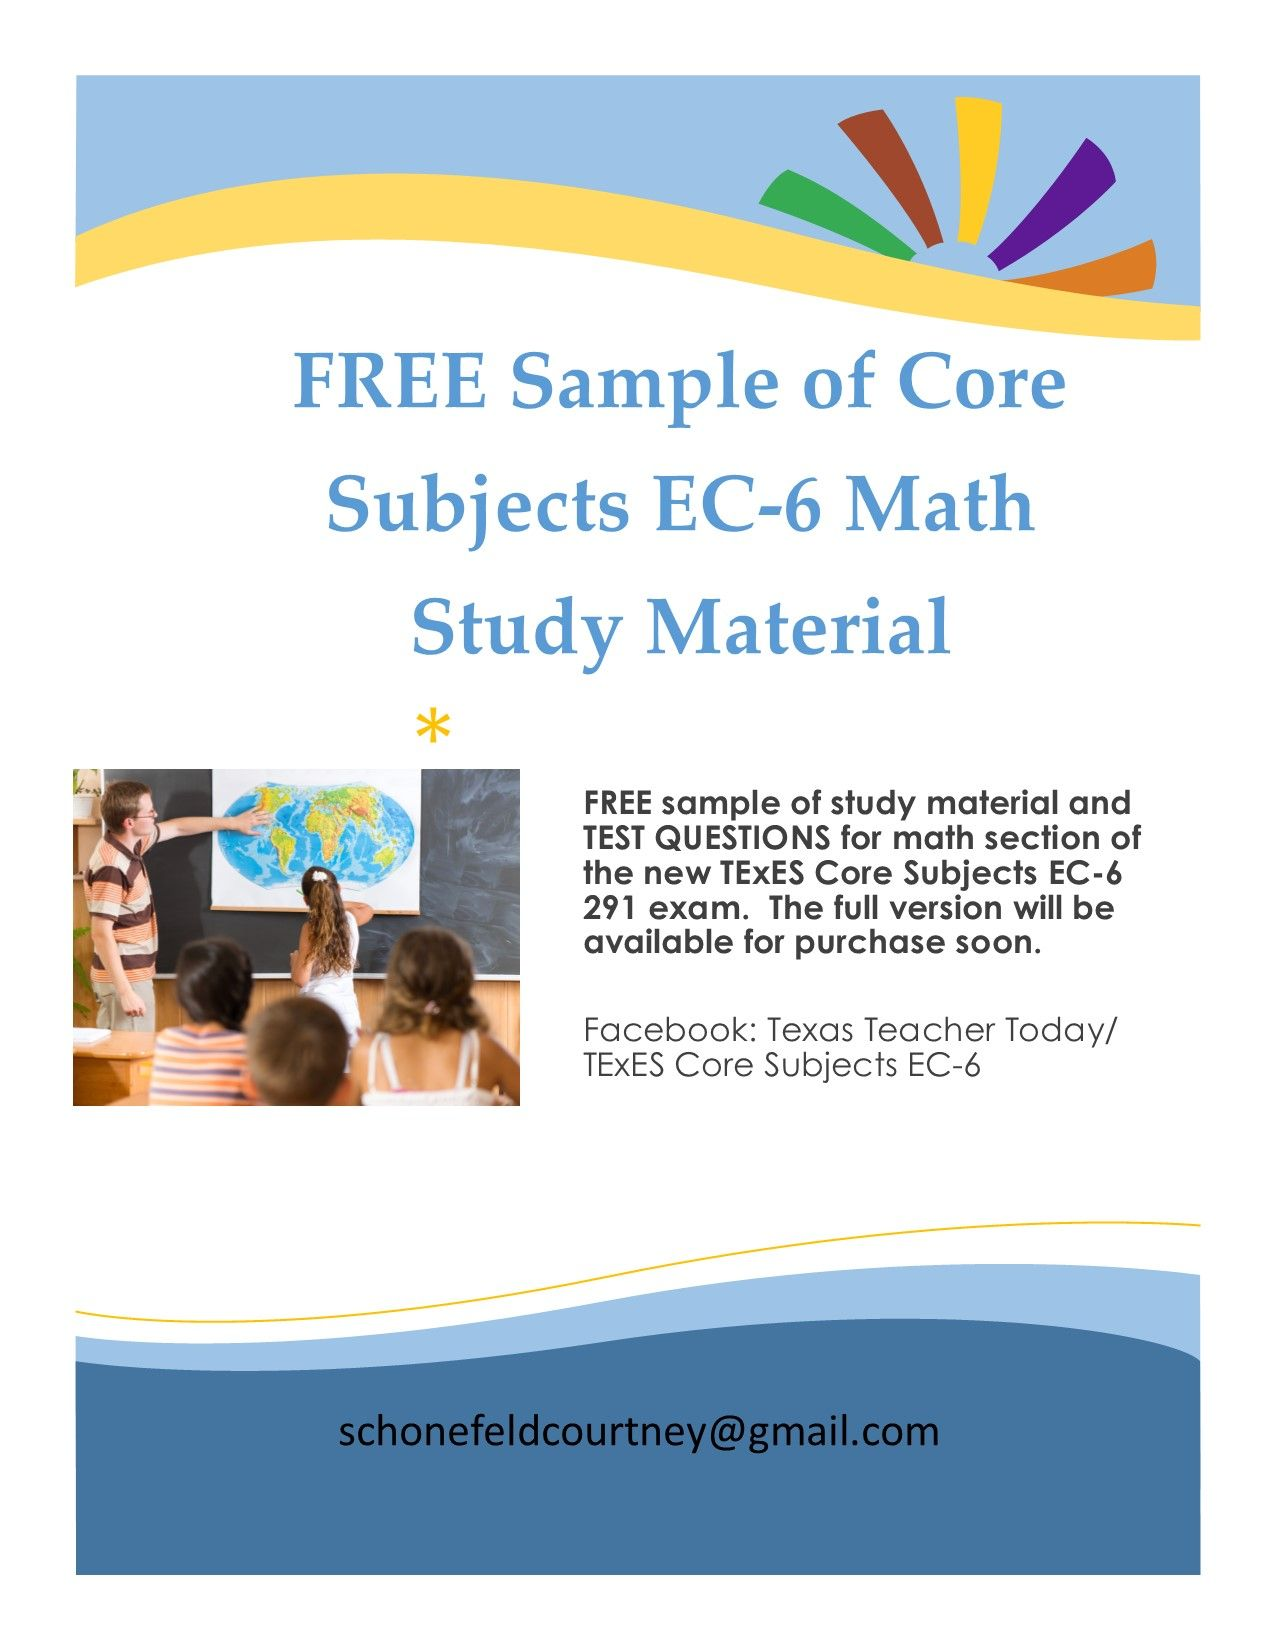 Passing the texes certification exam - Free Sample Of Math Study Material And Test Questions For The Math Portion Of The Texes